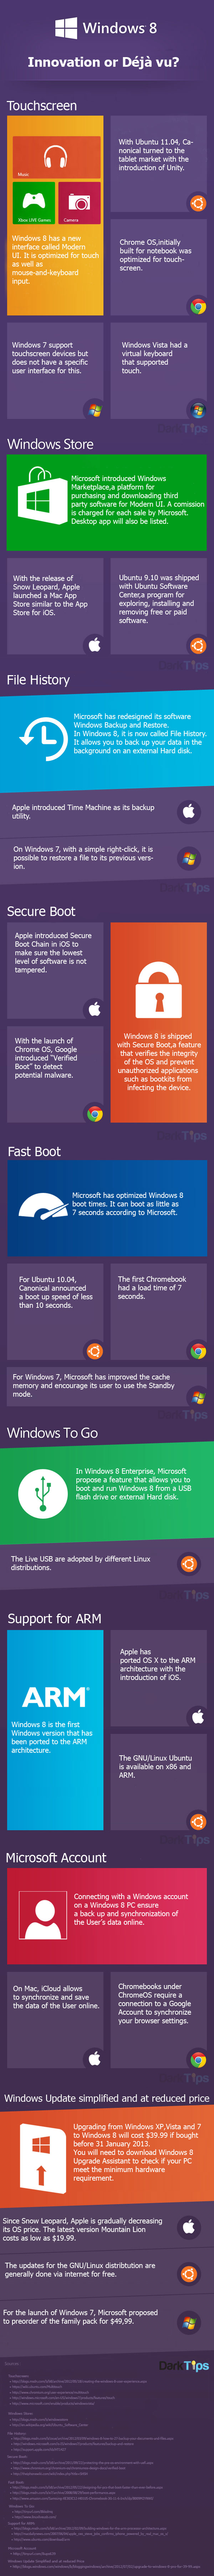 Windows 8: Innovation or Deja Vu?